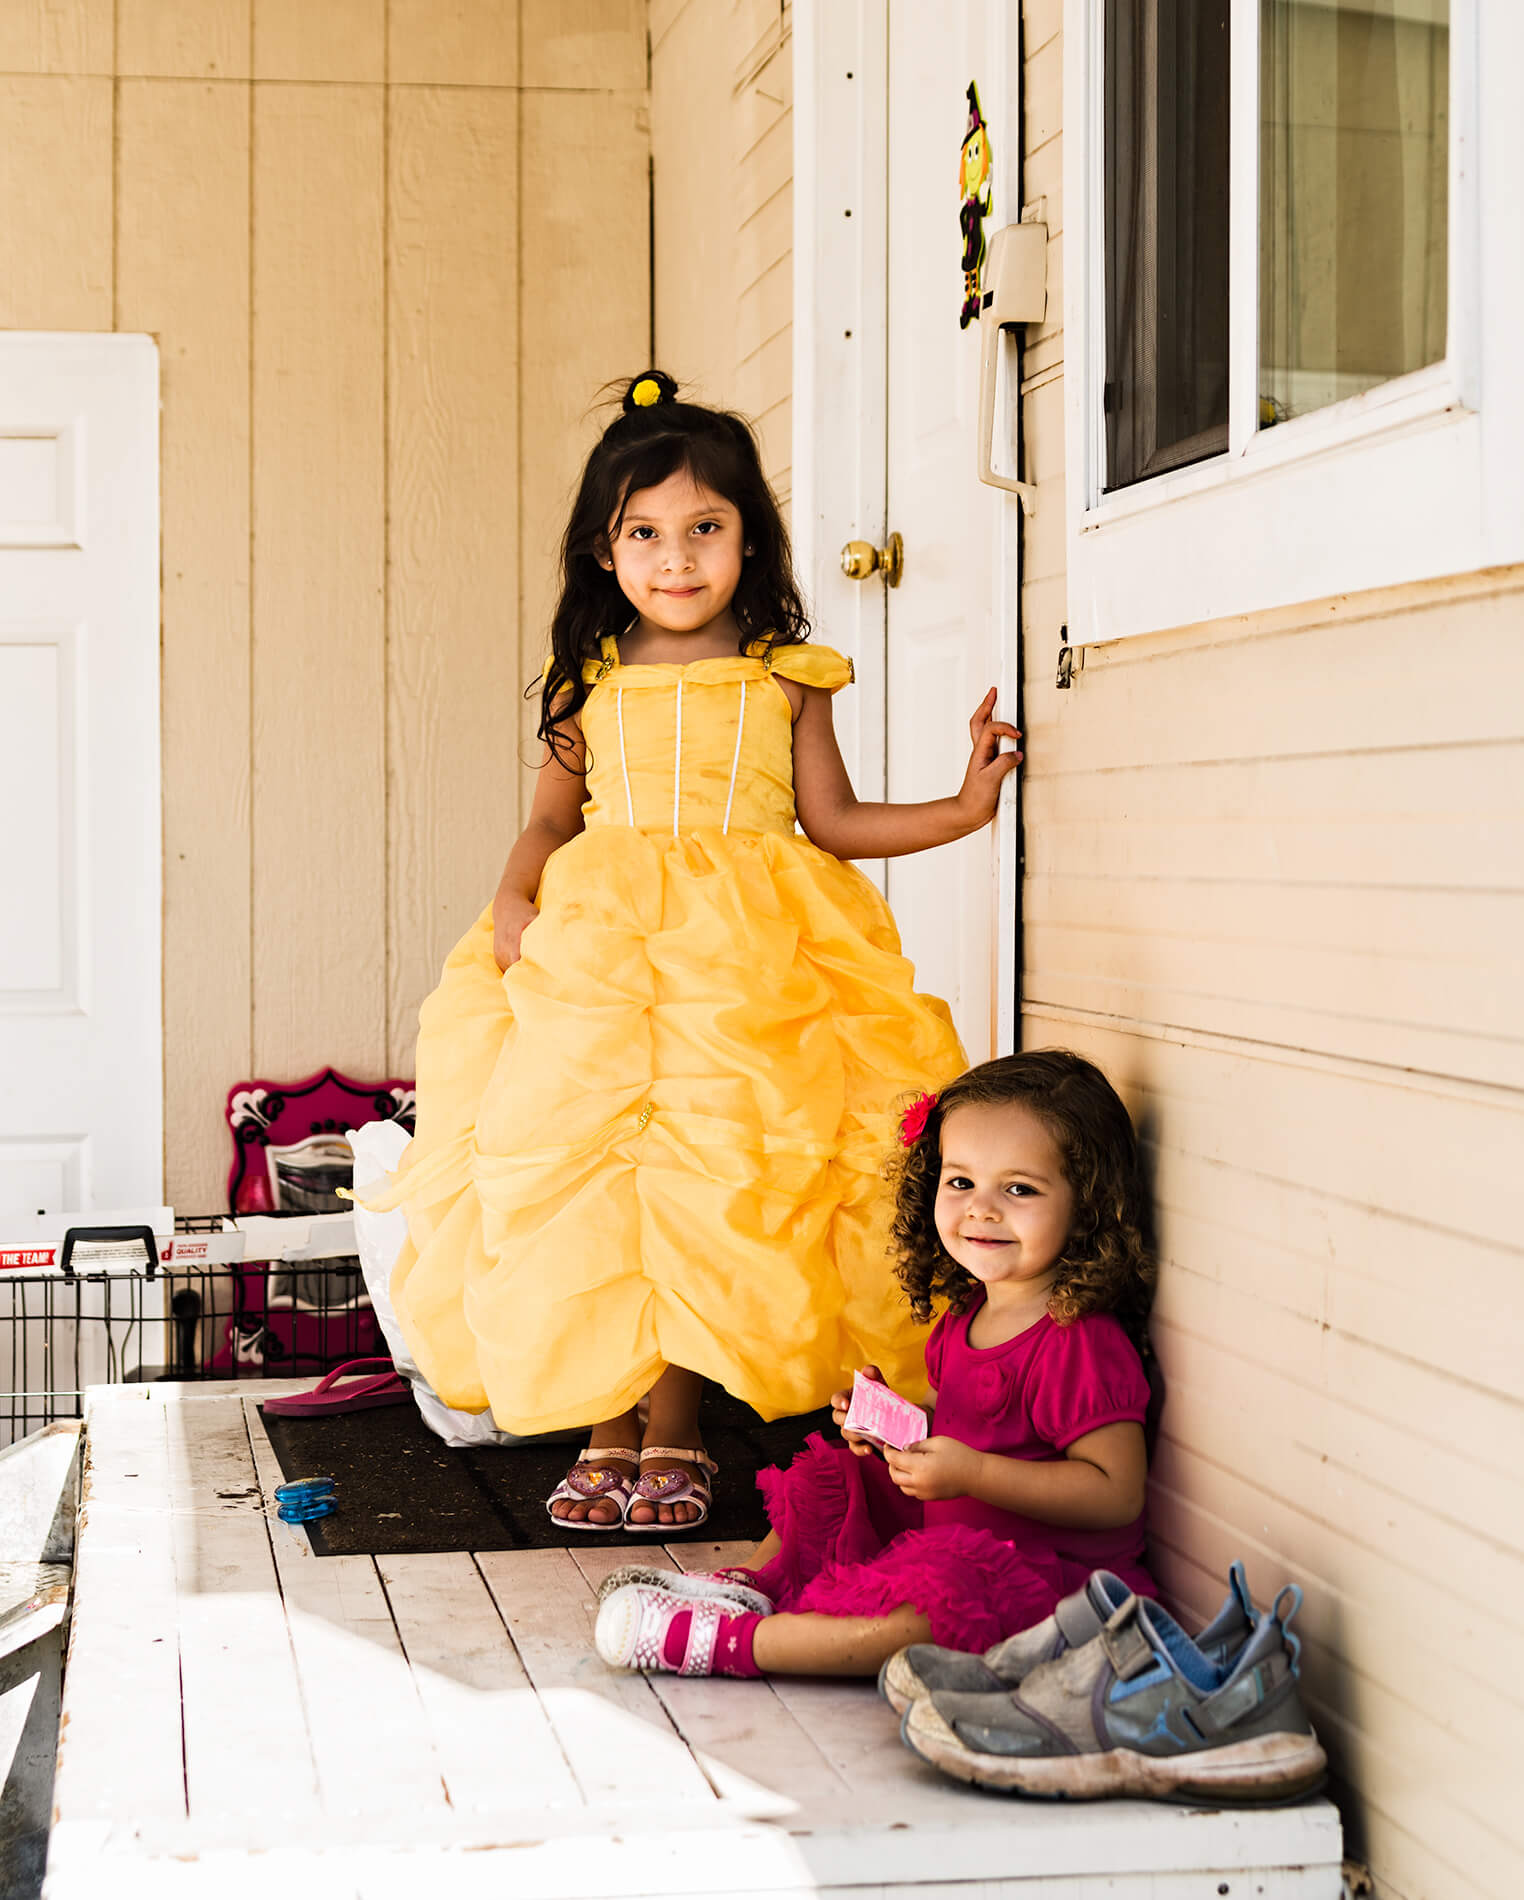 Two young girls dressed up